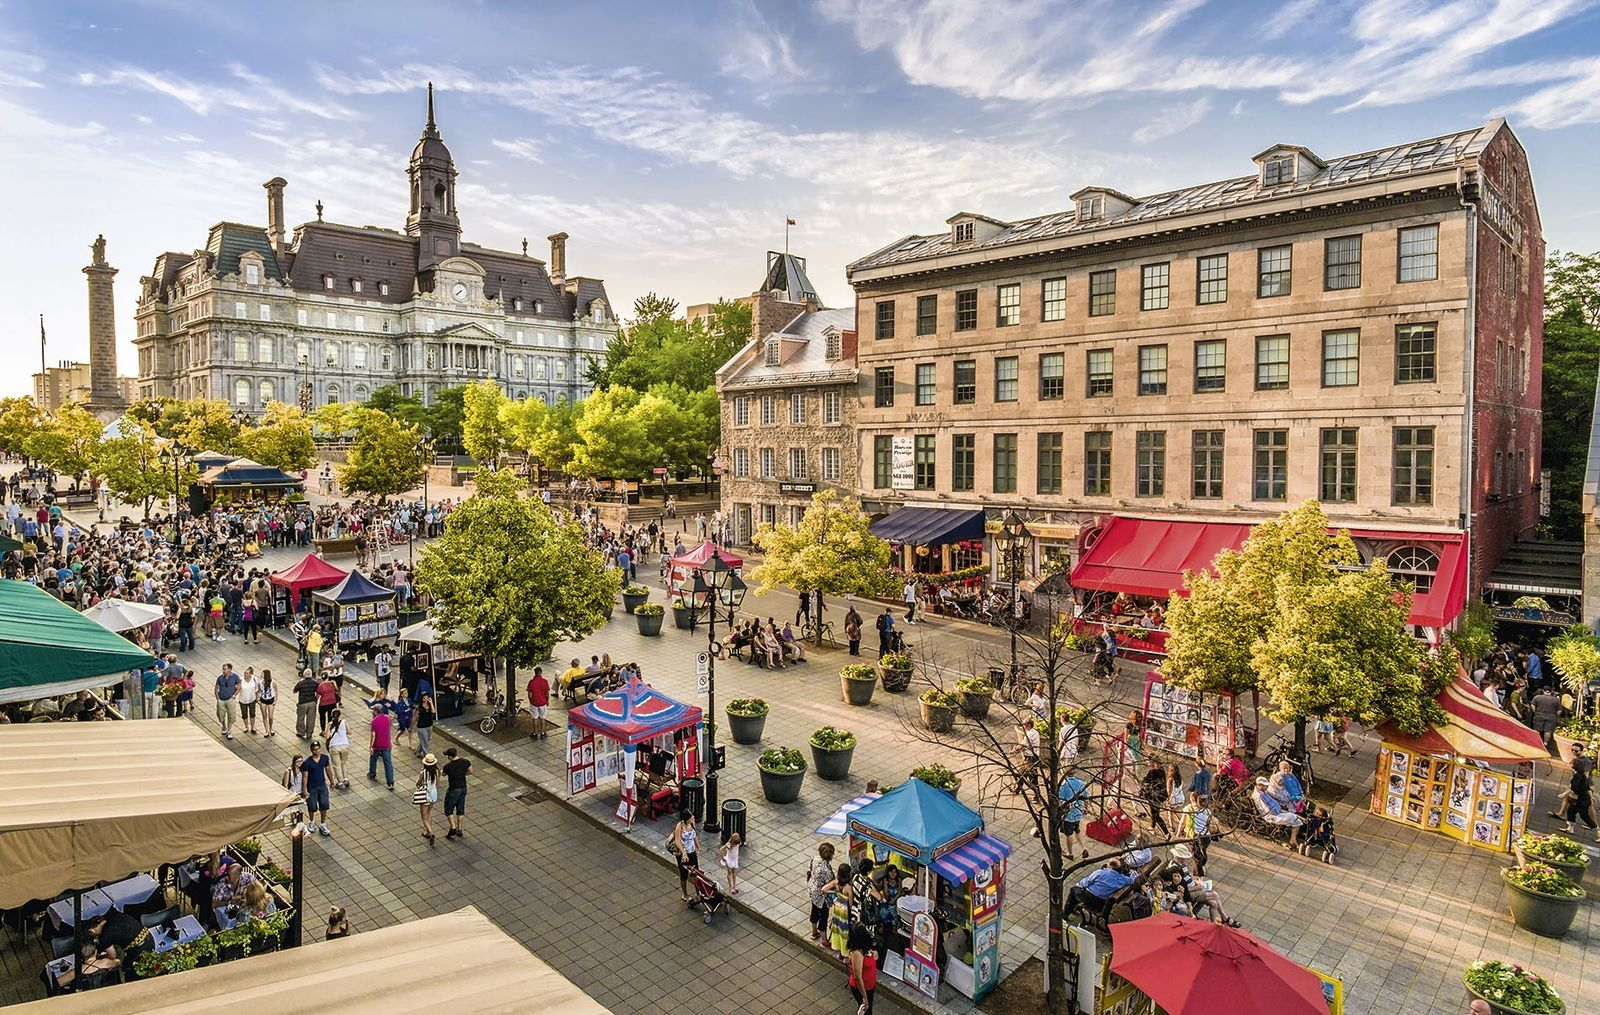 Quebec: Into the melting pot